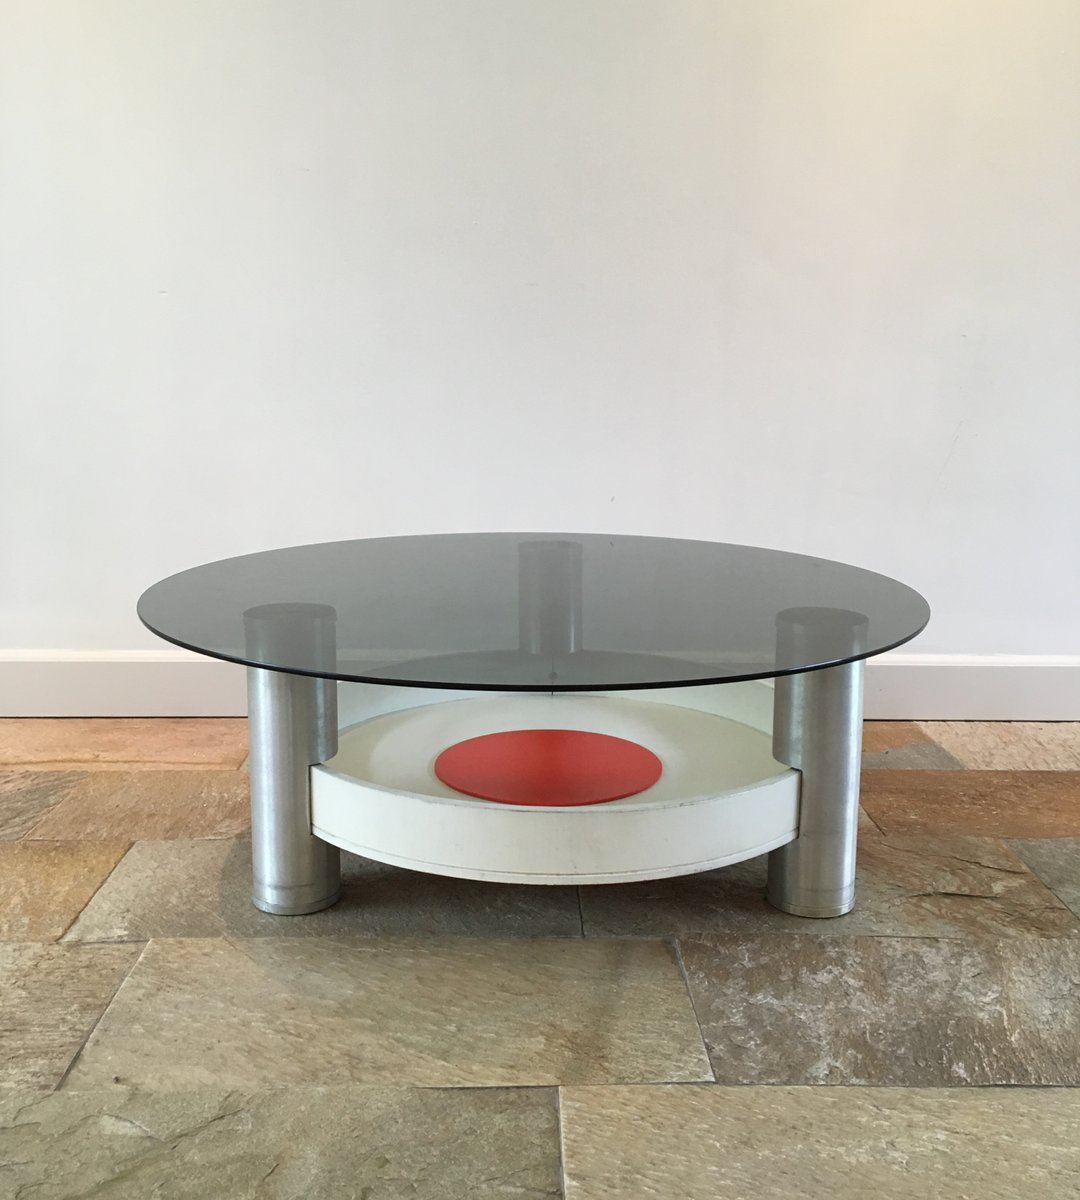 Umstead Oval Engineered Wood Coffee Table: Vintage Industrial Space Age Coffee Table For Sale At Pamono